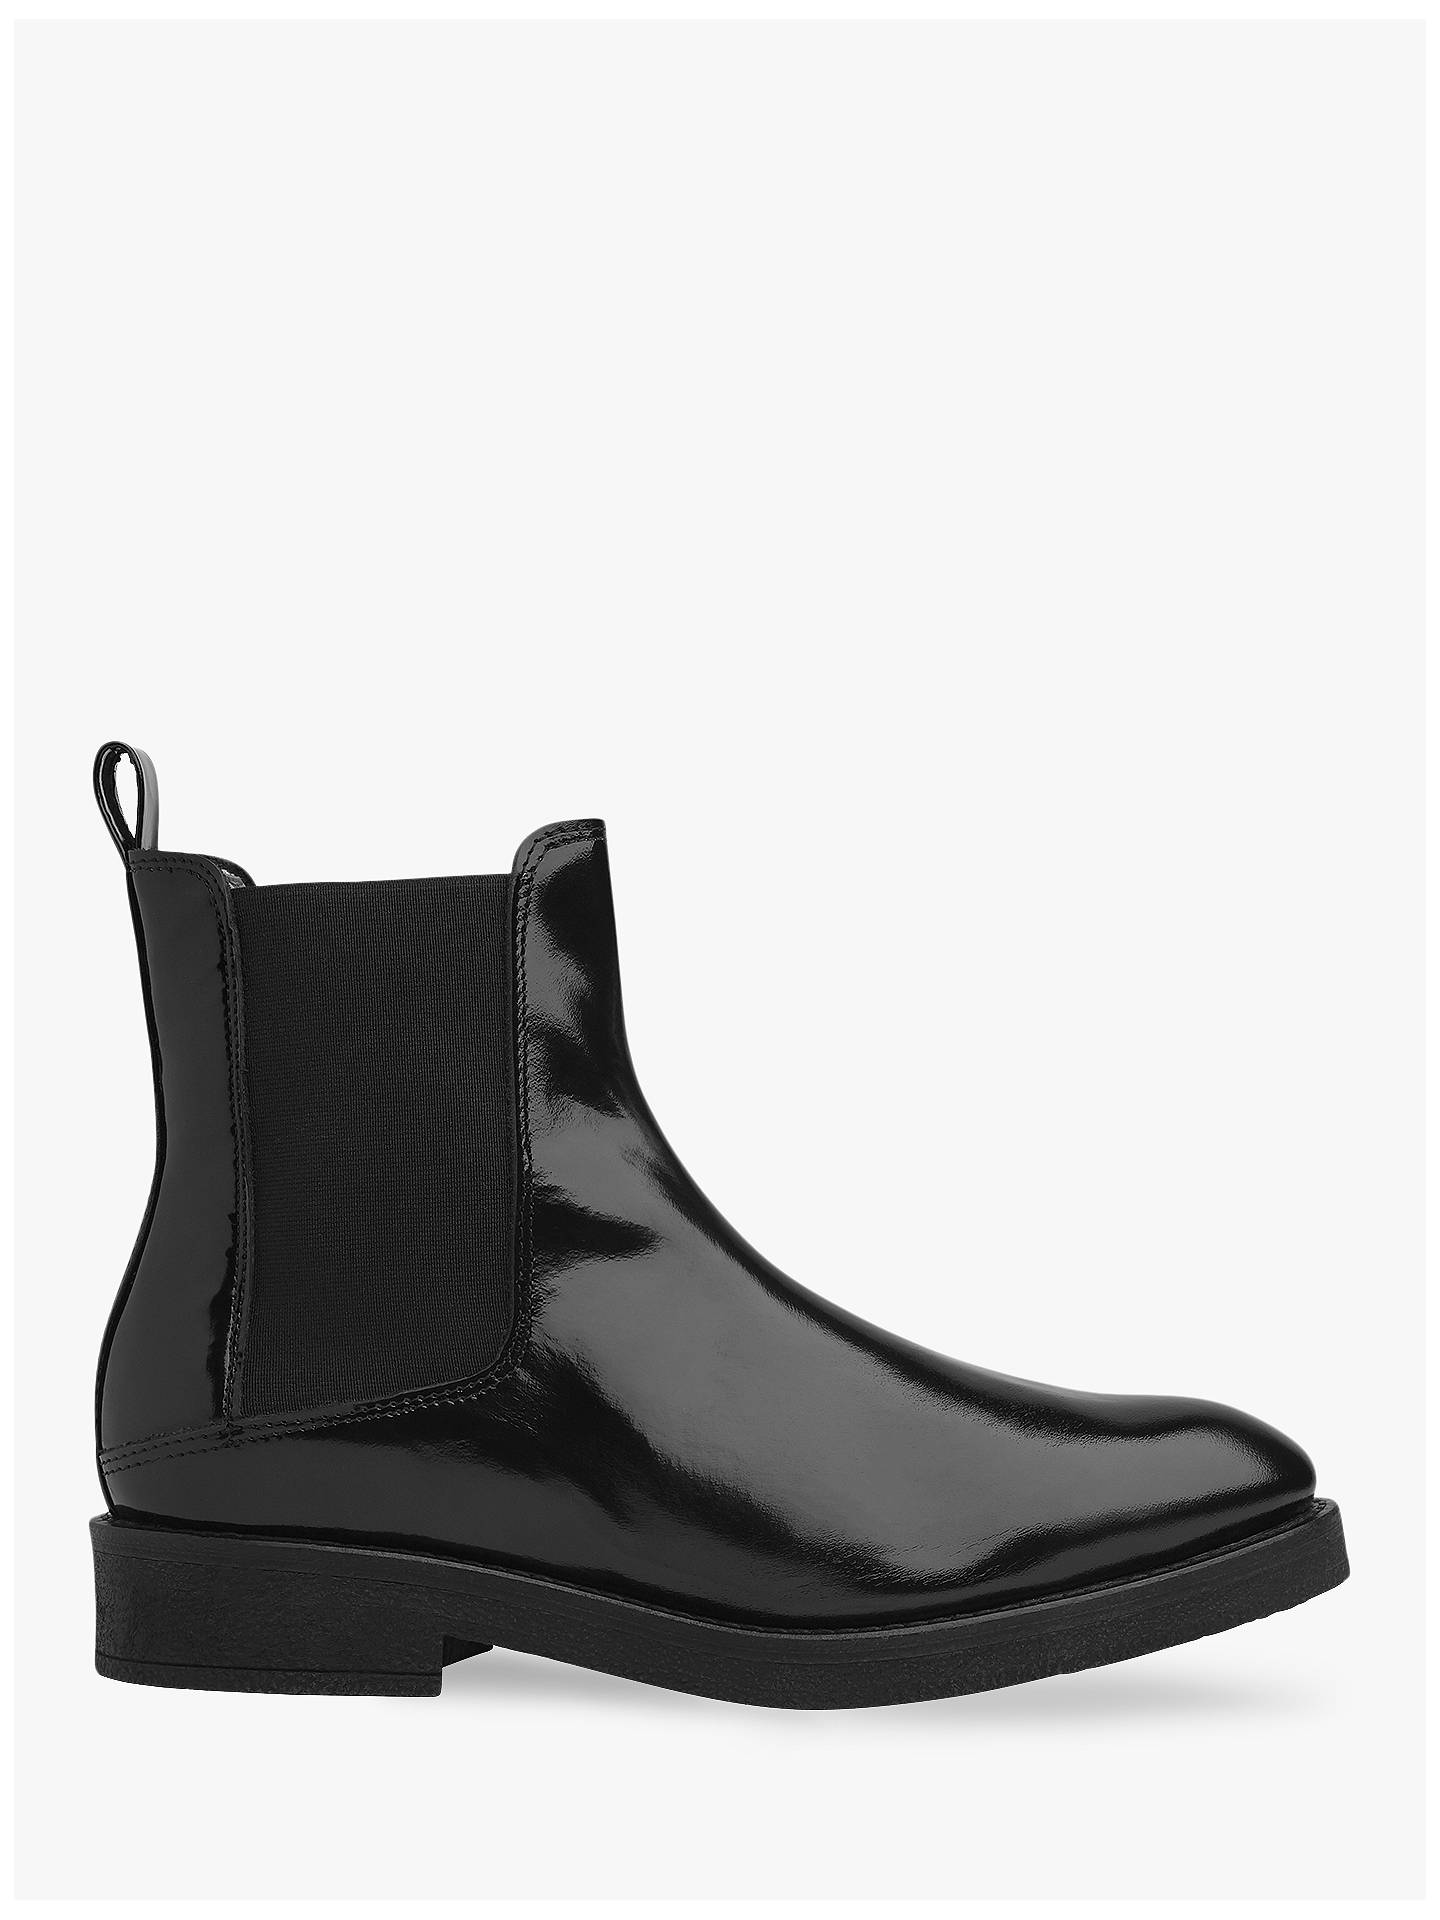 3ecb6a075 Whistles Arno Rubber Sole Chelsea Boots, Black at John Lewis & Partners